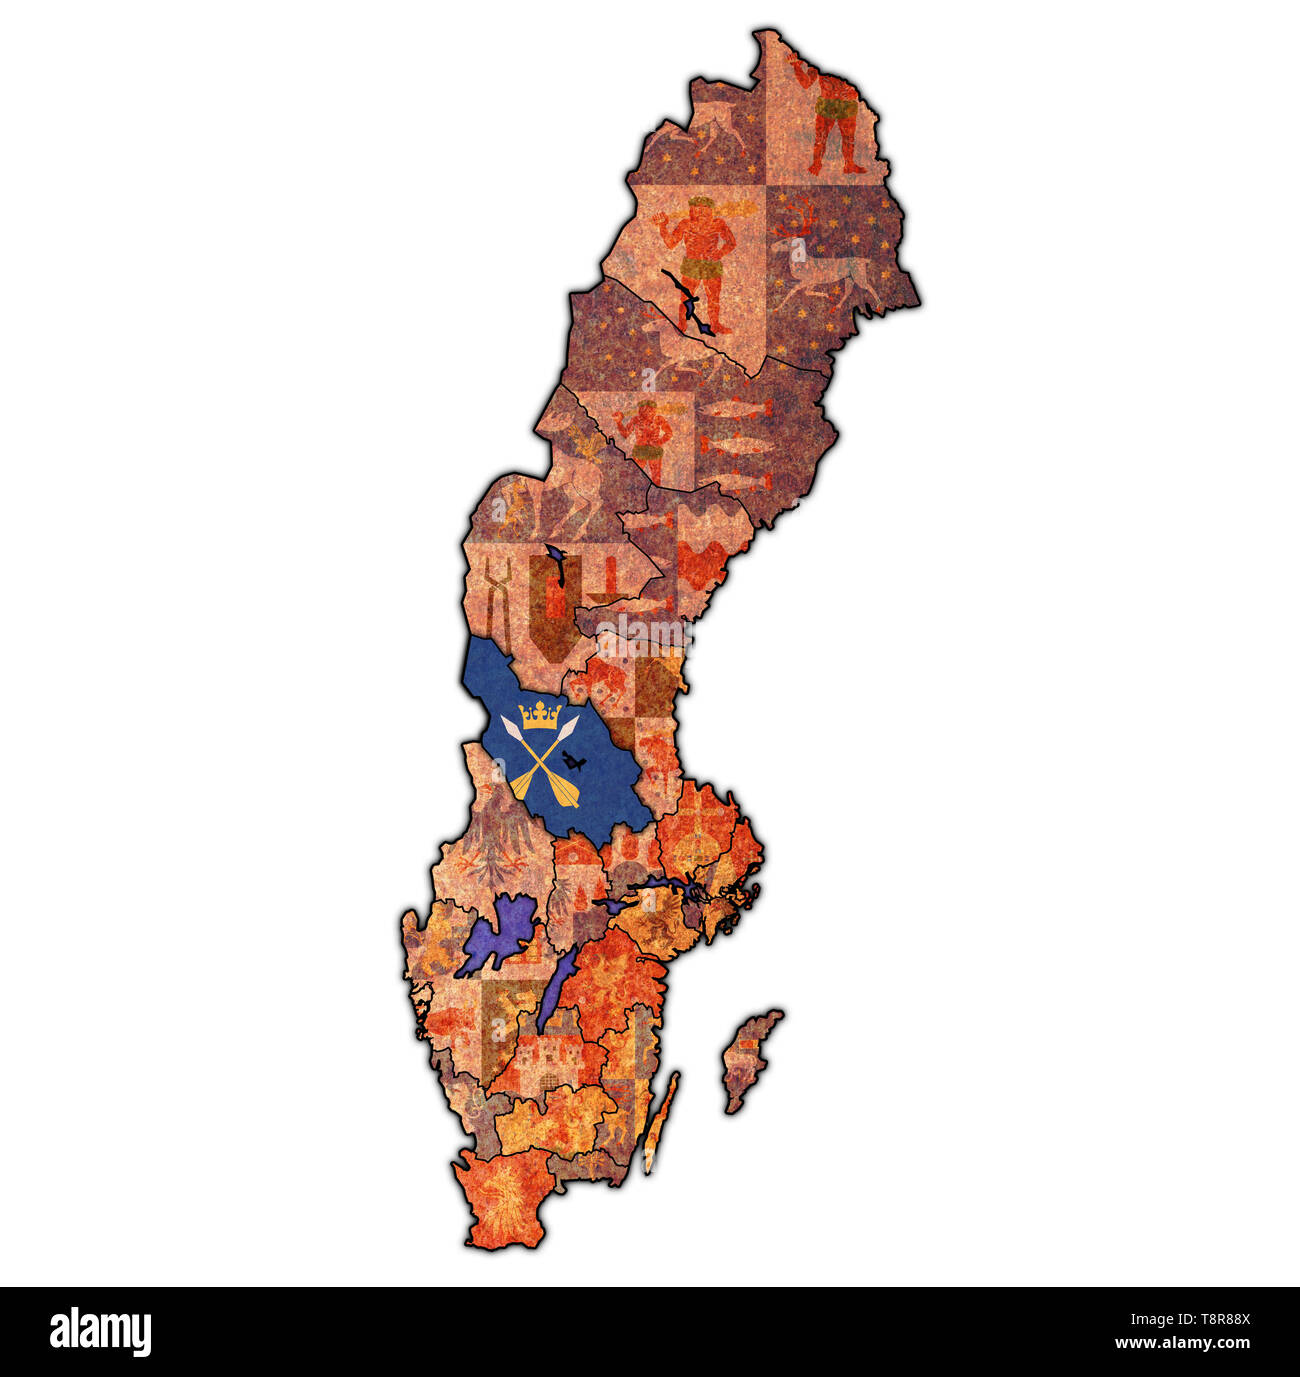 flag of Dalarna county on map of administrative divisions of Sweden with clipping path - Stock Image